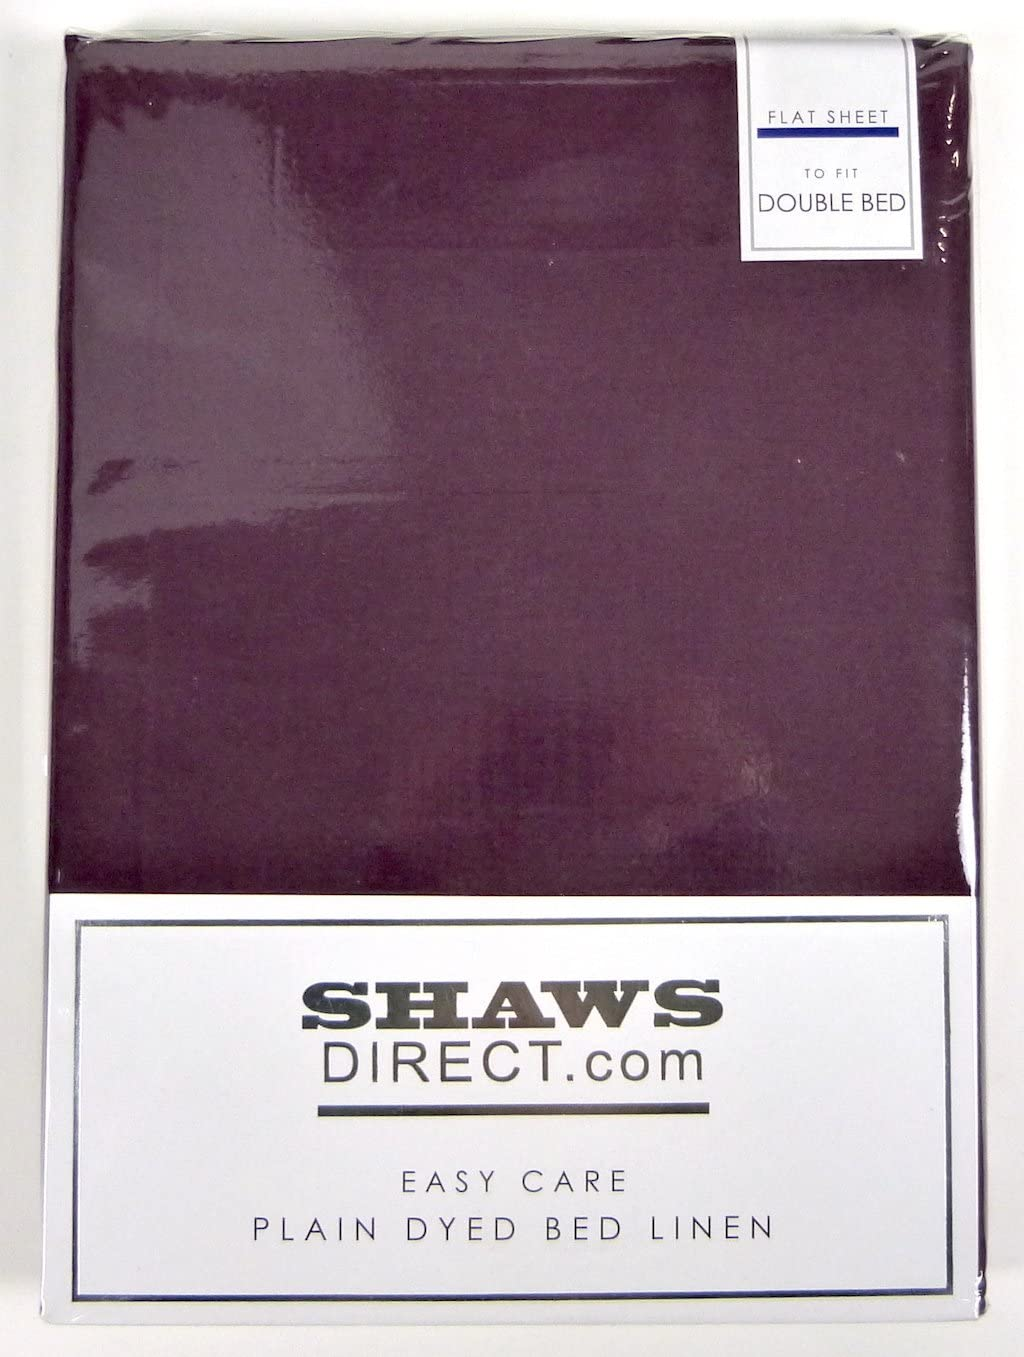 Double, Black ShawsDirect Bed Linen Easy Care Polycotton Flat Sheet